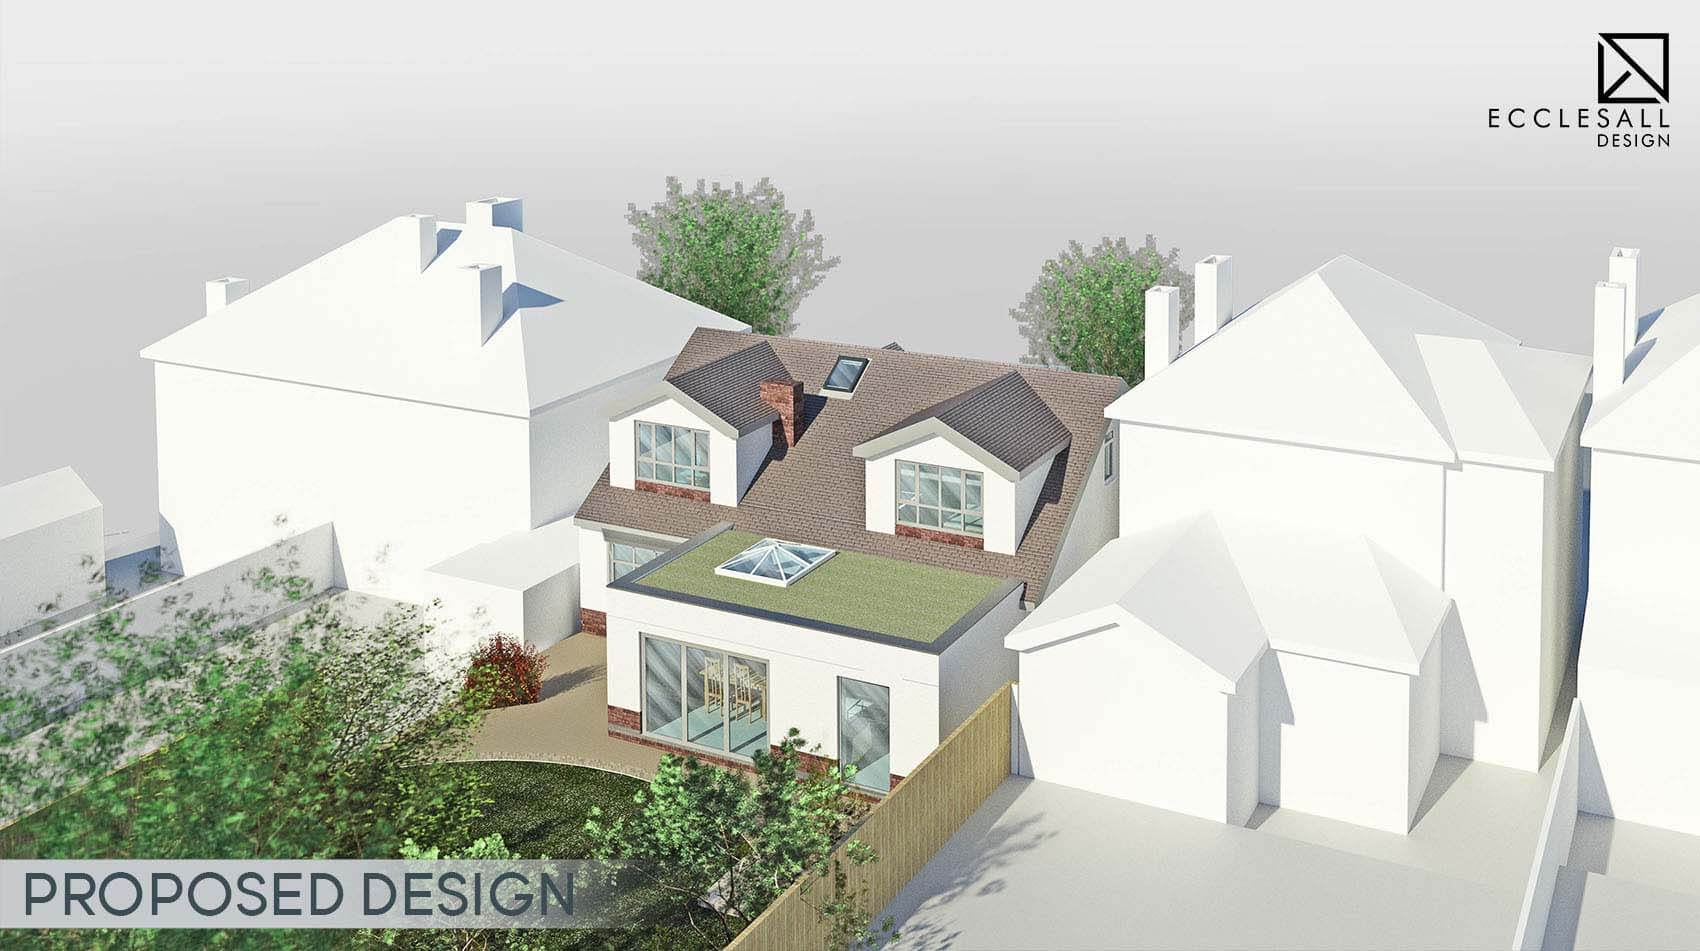 Sheffield Furniss House Renovation & Extension